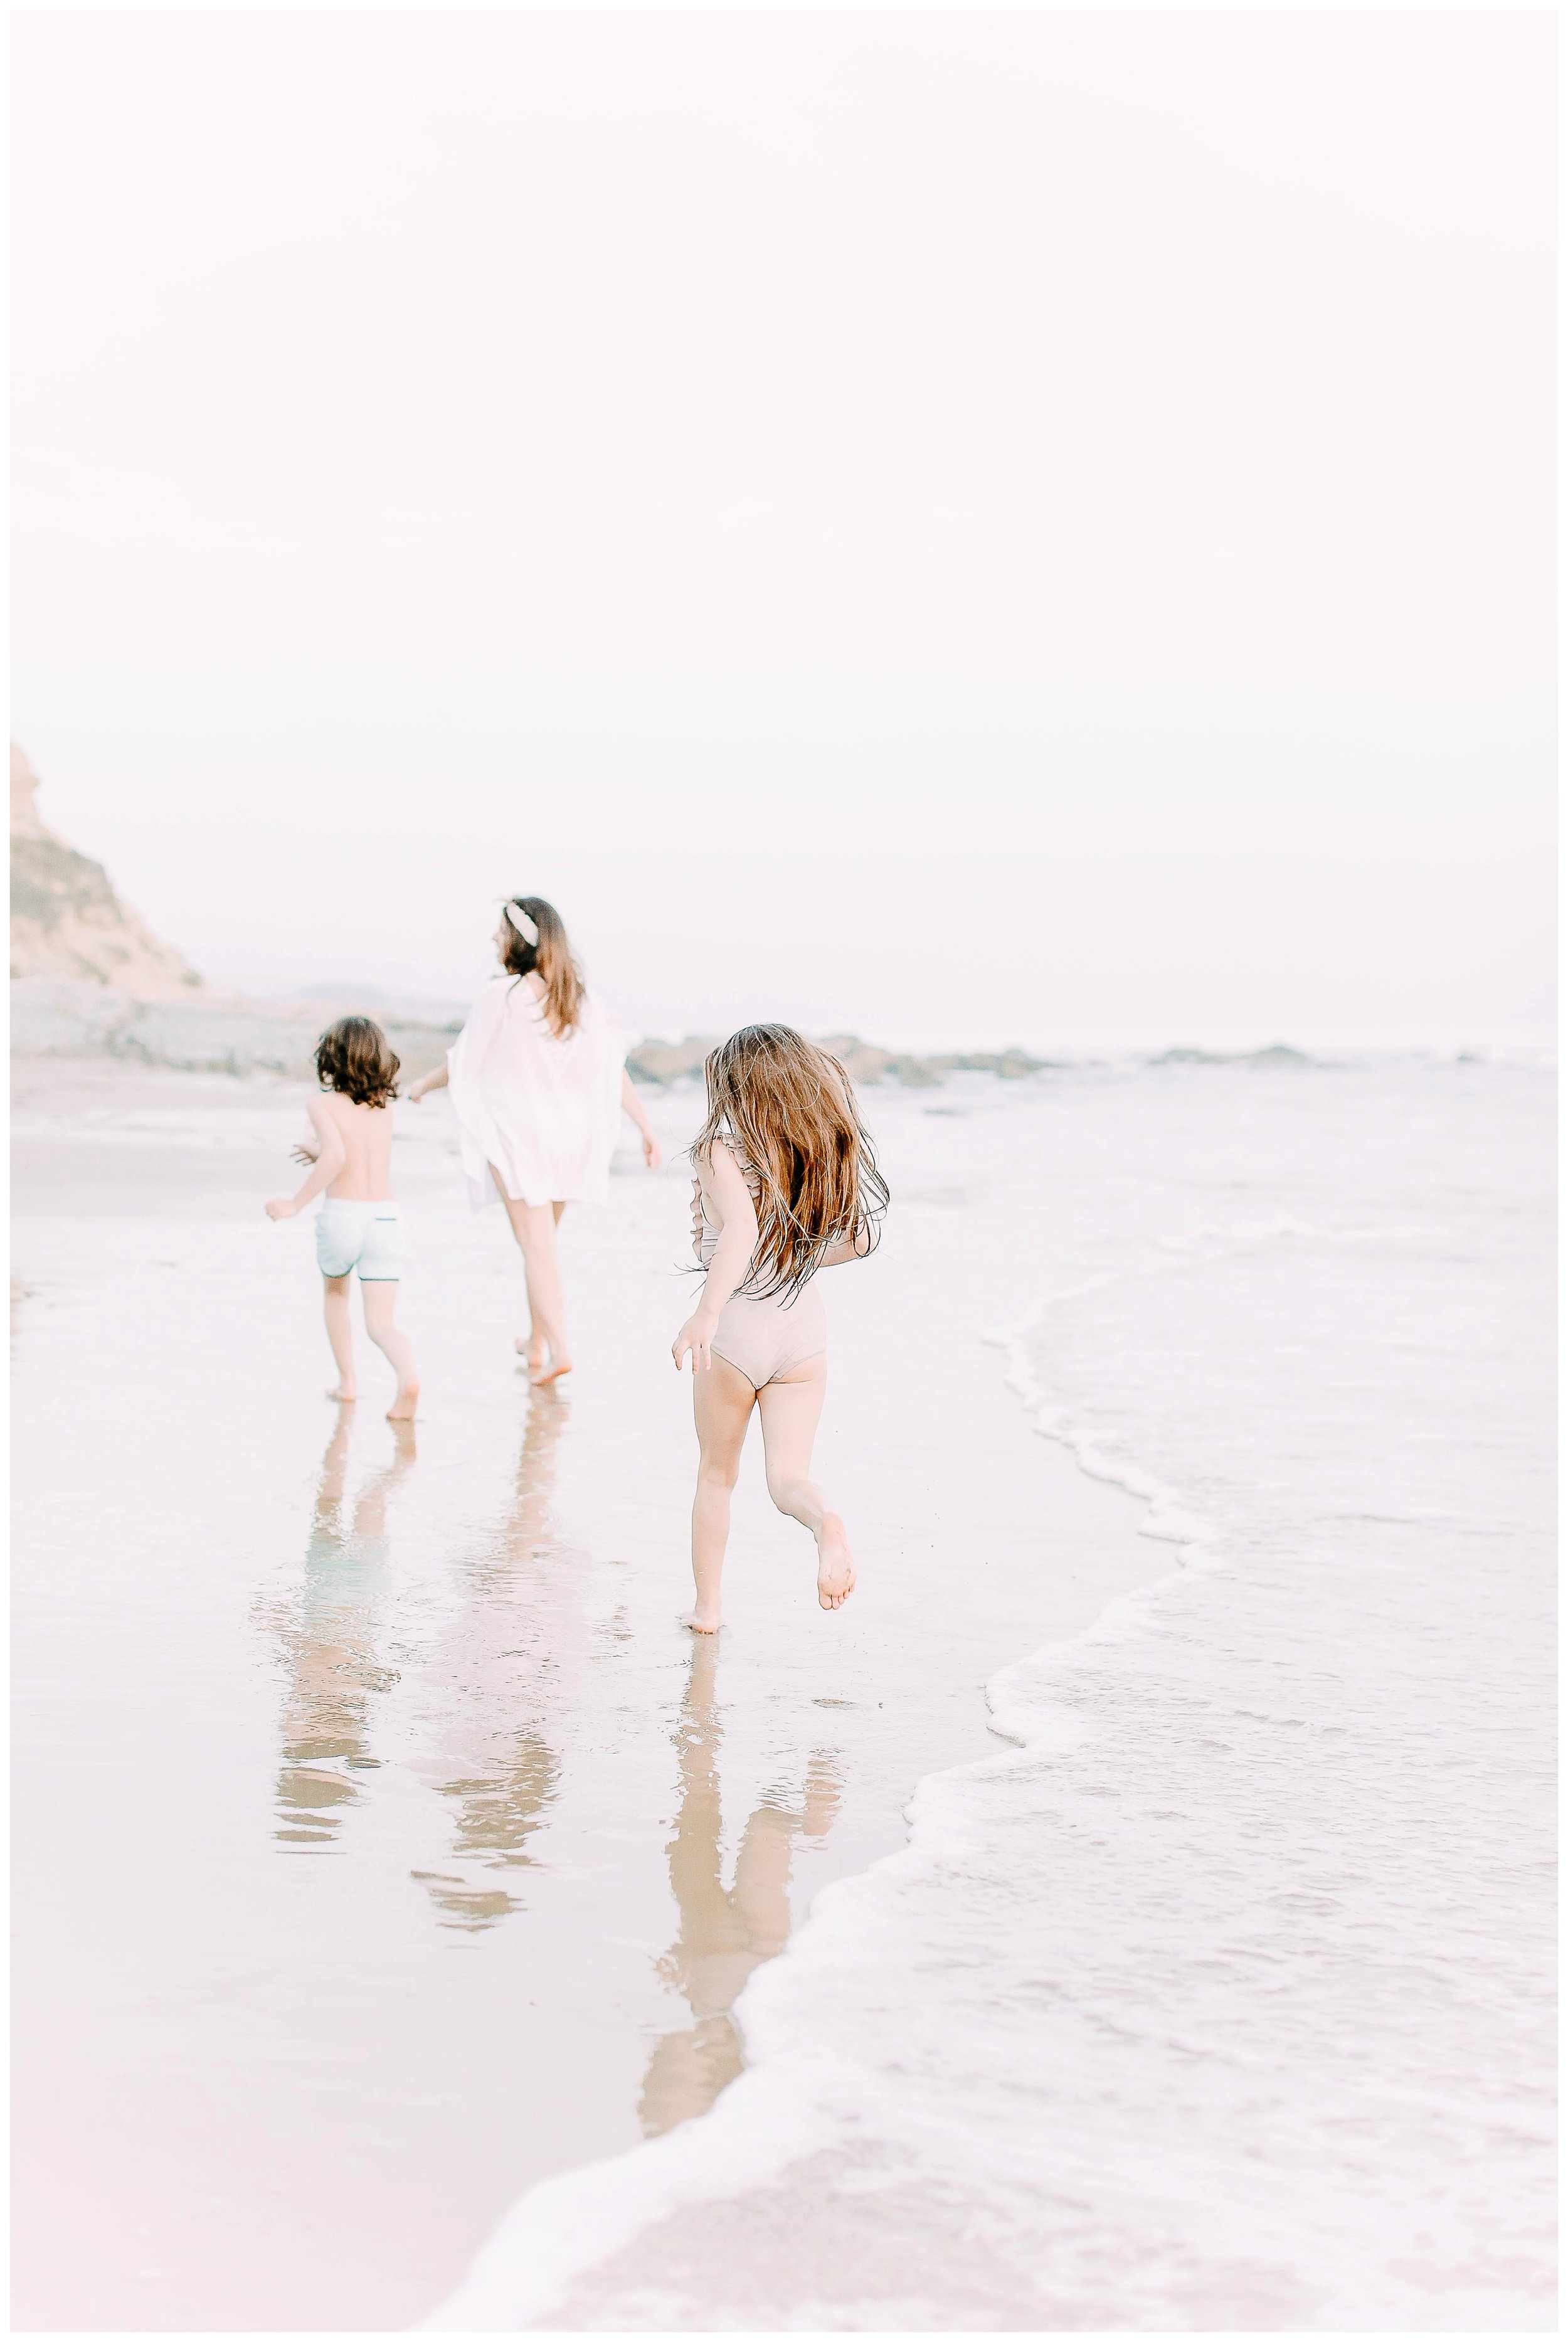 Crystal-Cove-State-Beach-Motherhood- Session-Crystal-Cove-Newport-Beach-Family-Photographer-Crystal-Cove-Minnow-Swim-Cori-Kleckner-Photography-Orange-County-Vacation-Family-Photos-Session-_0867.jpg